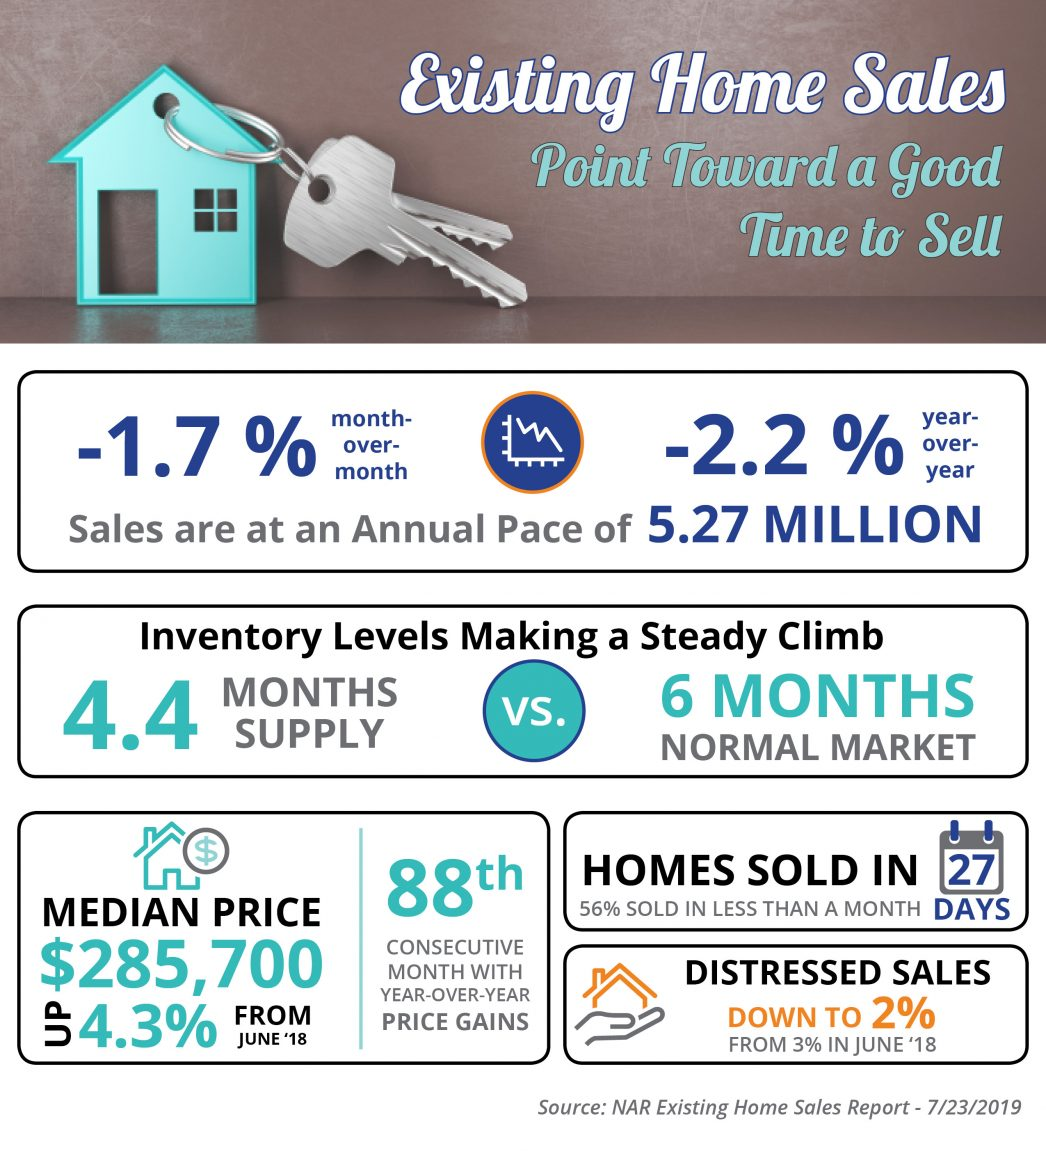 Existing Home Sales Point Toward a Good Time to Sell.jpg